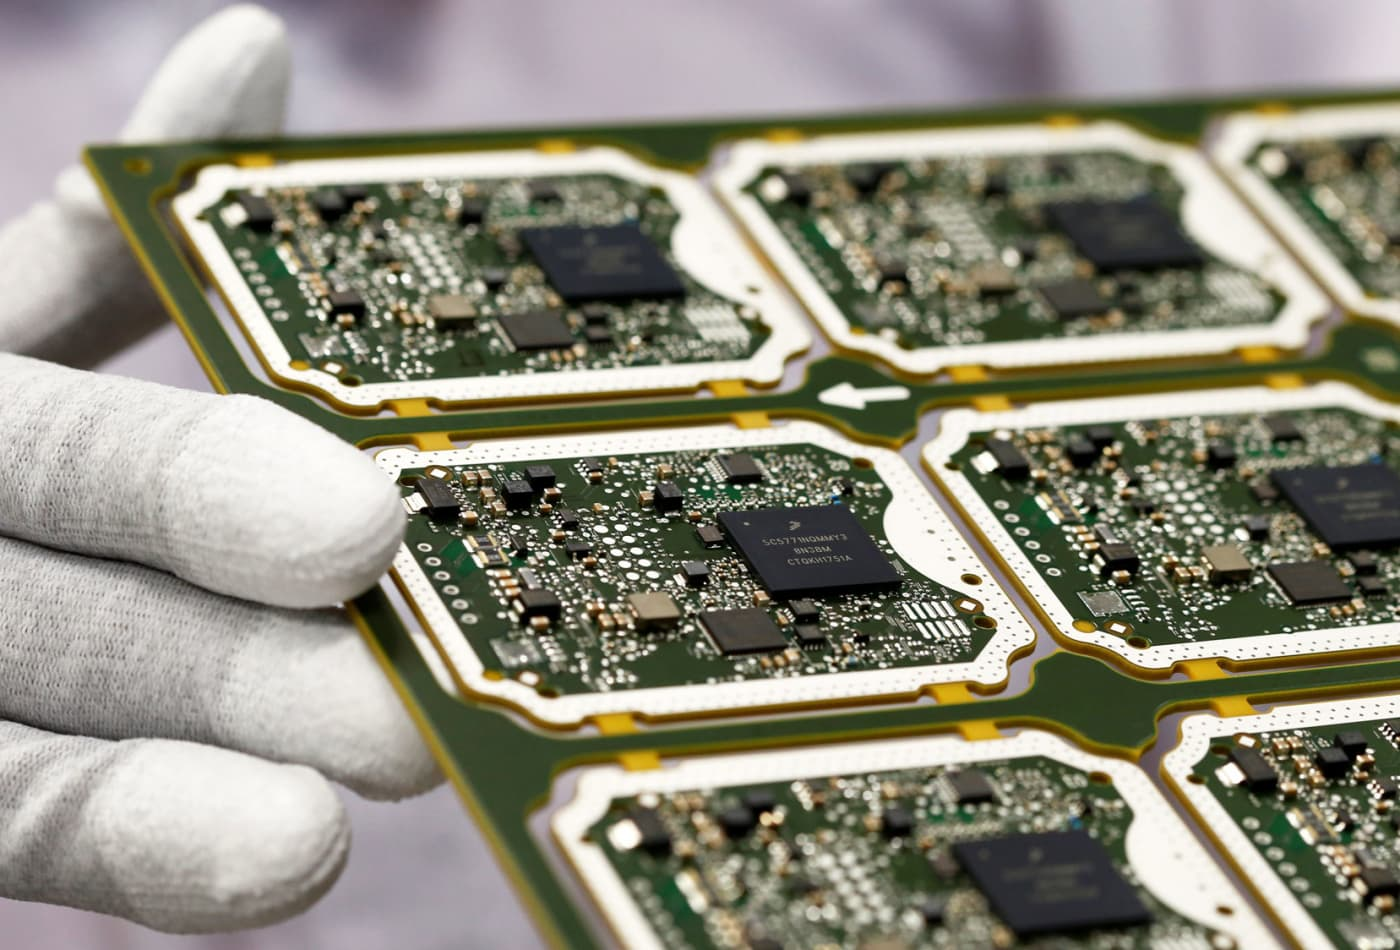 Chinese ministry calls for supply chain resiliency, without mentioning chip production targets